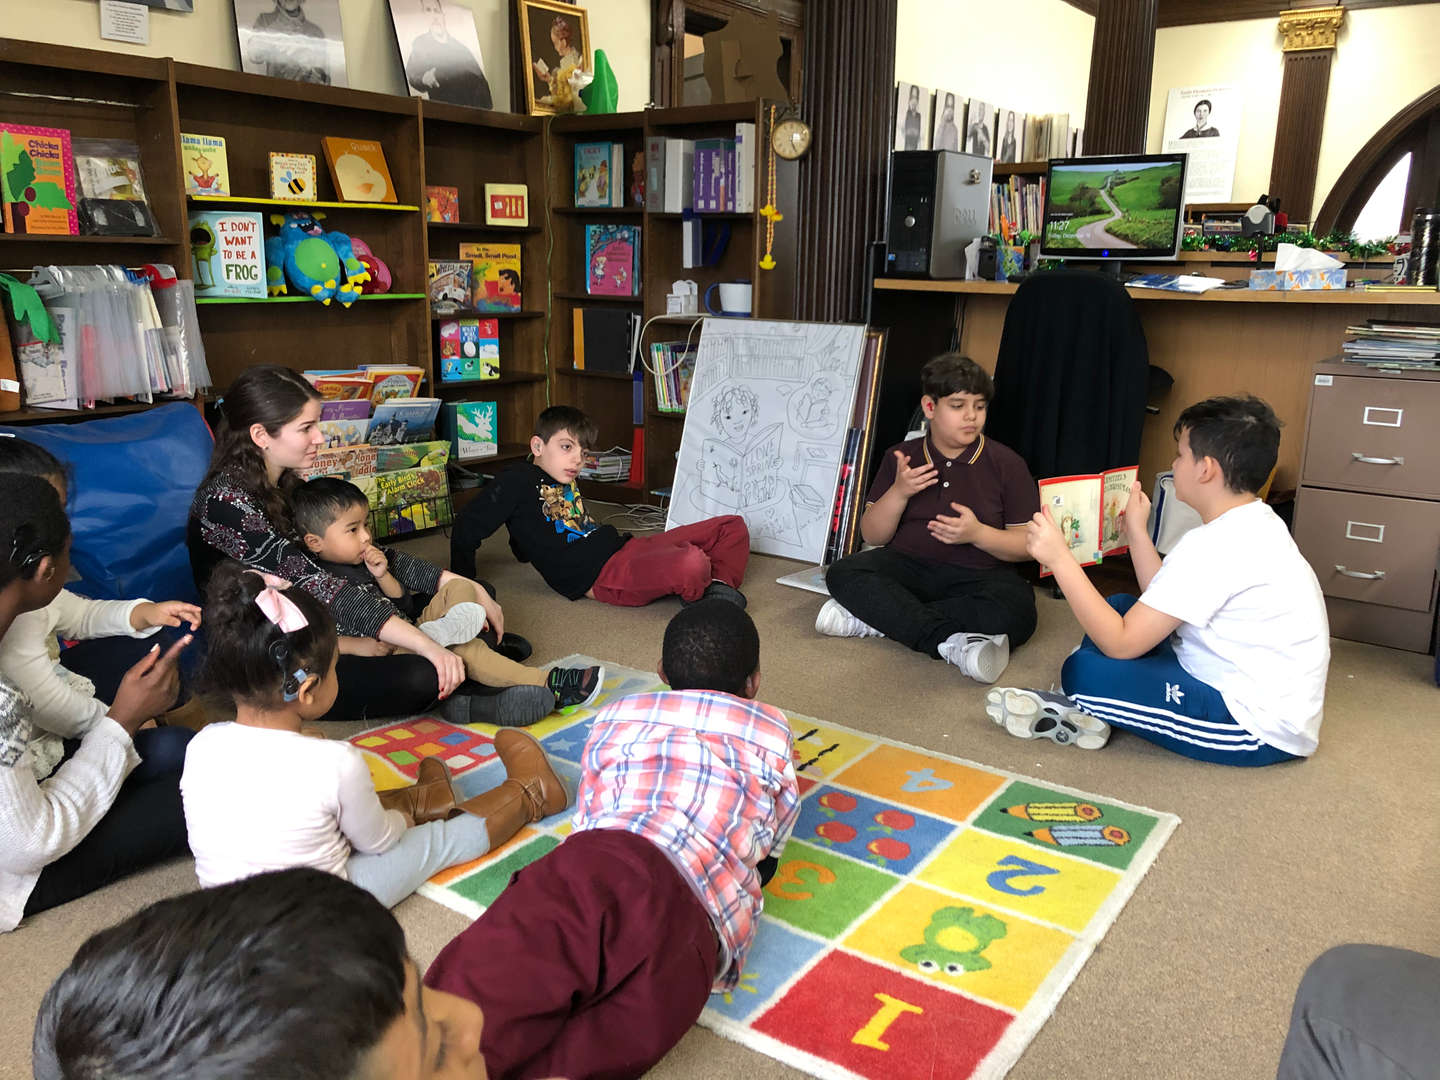 students gathered together as one reads a story to the group